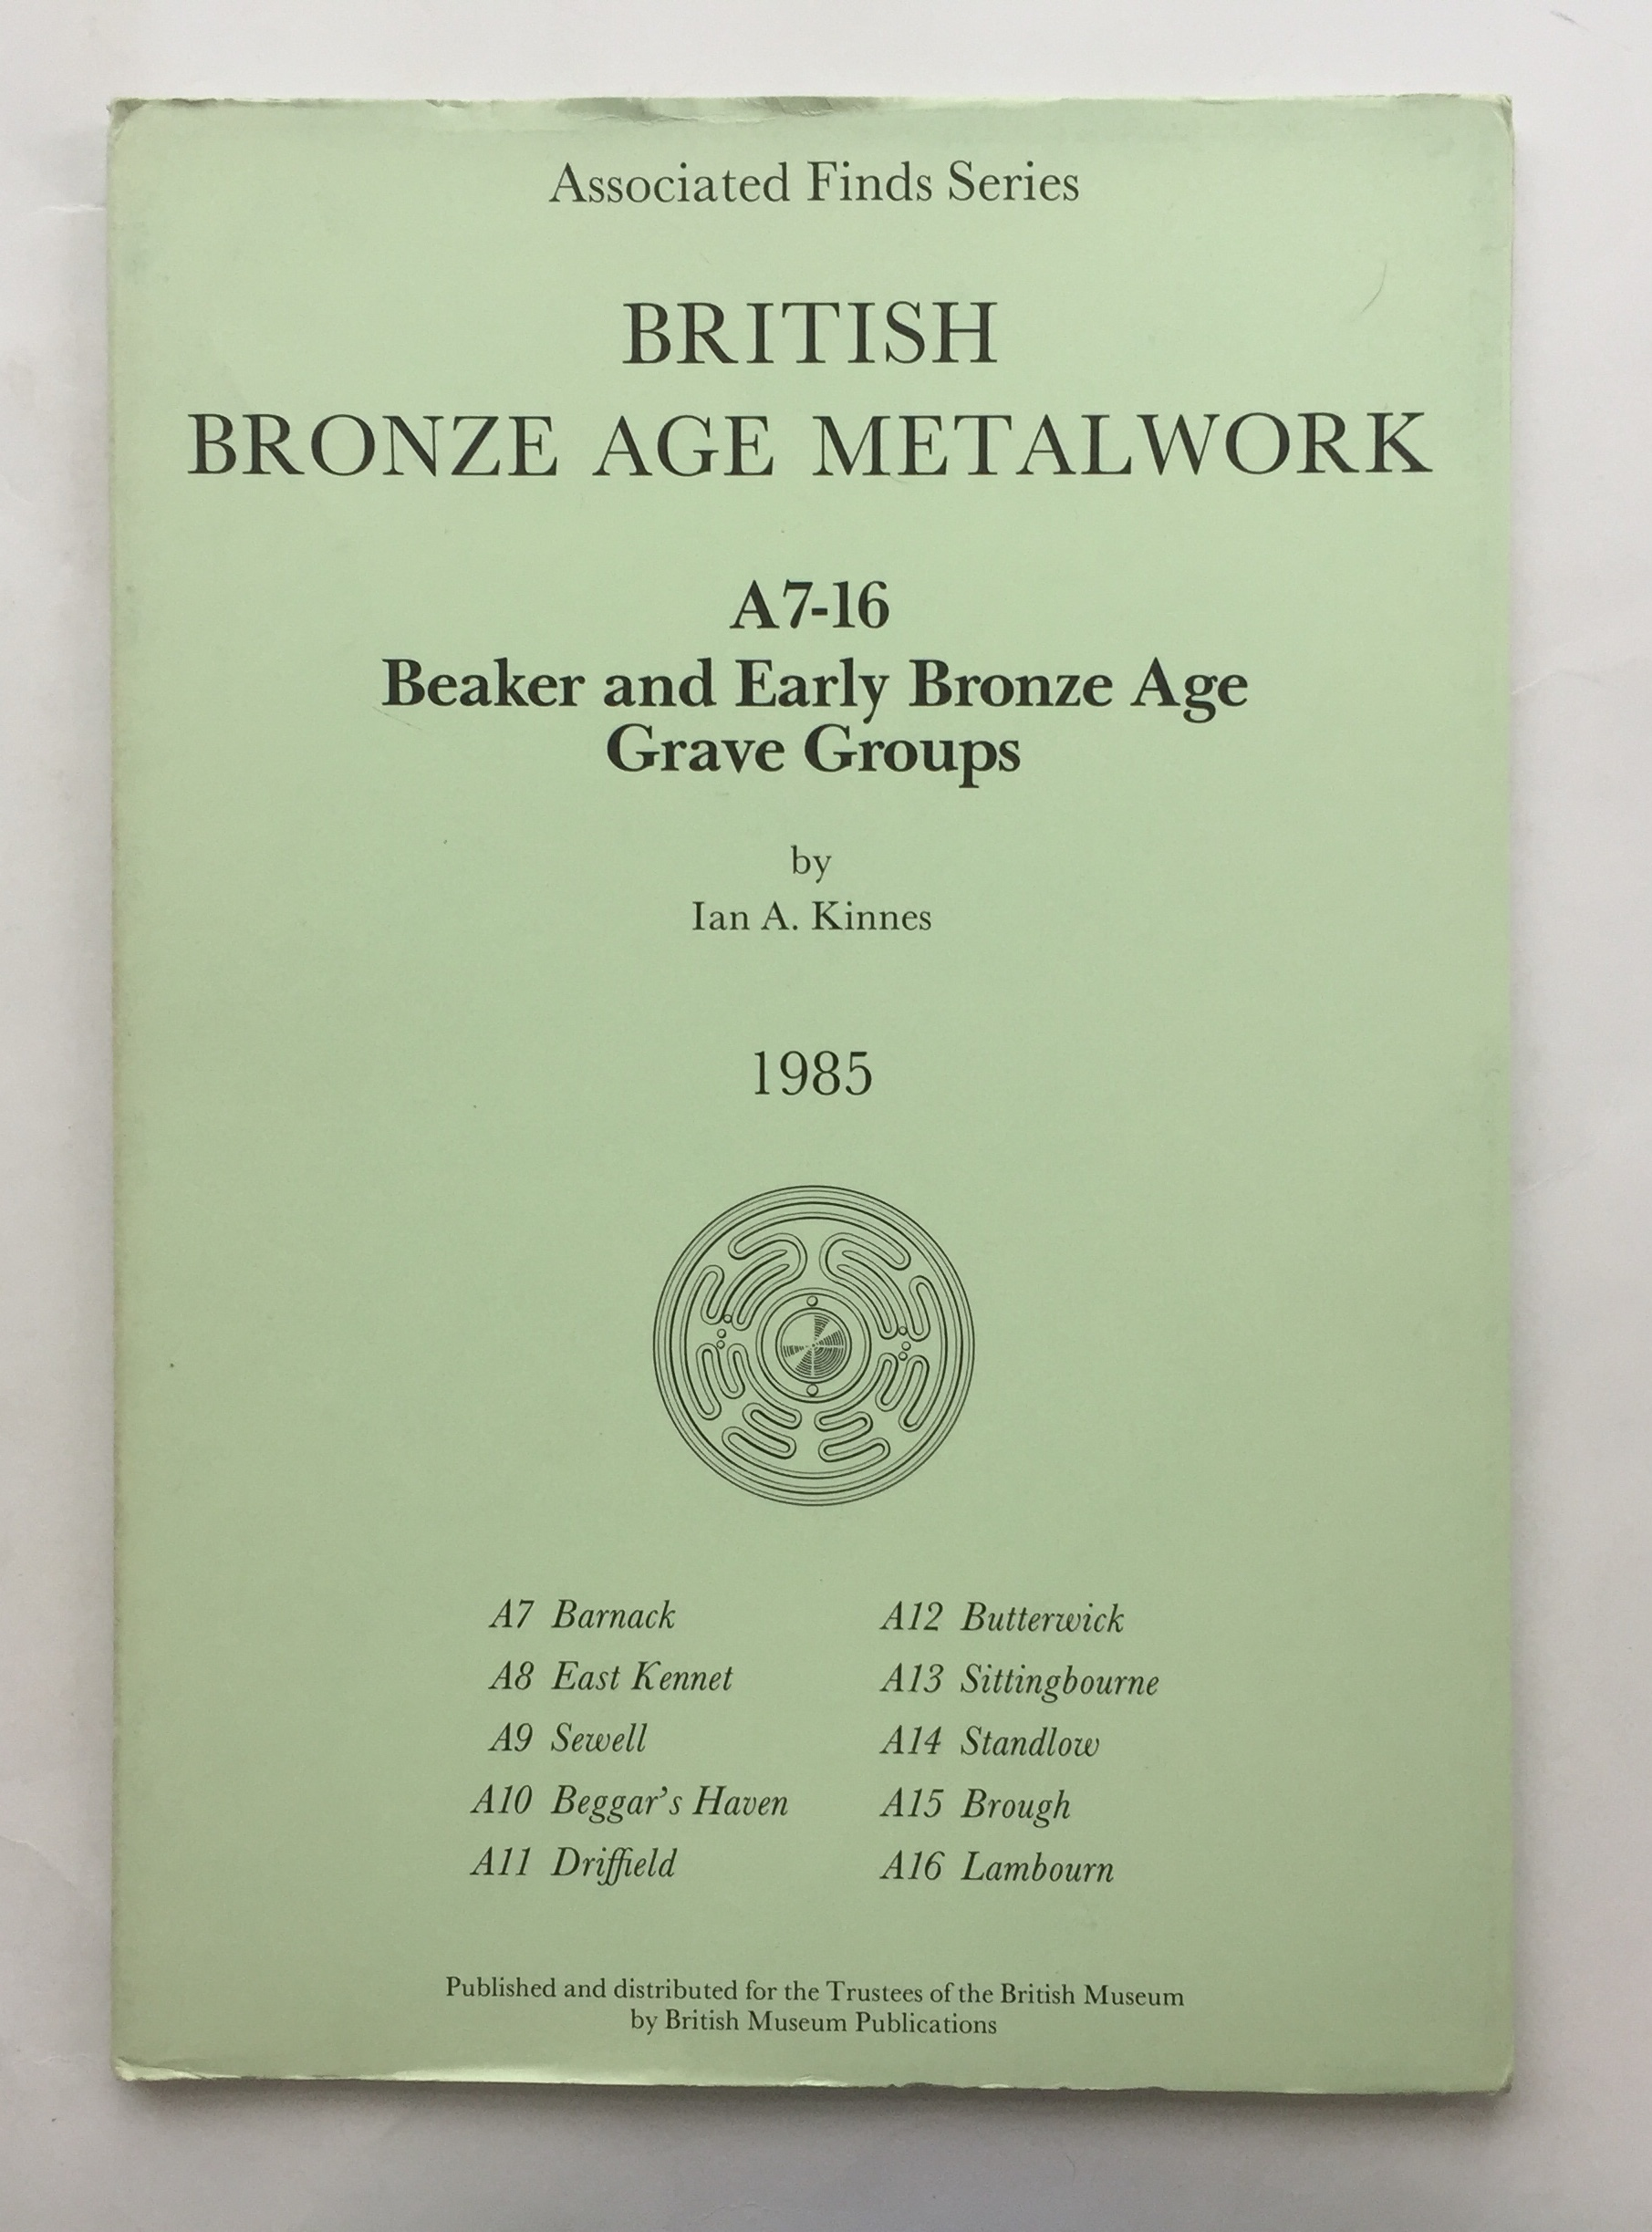 British Bronze Age Metalwork :A7-16 Beaker and Early Bronze Age Grave Groups (Associated Finds Series)